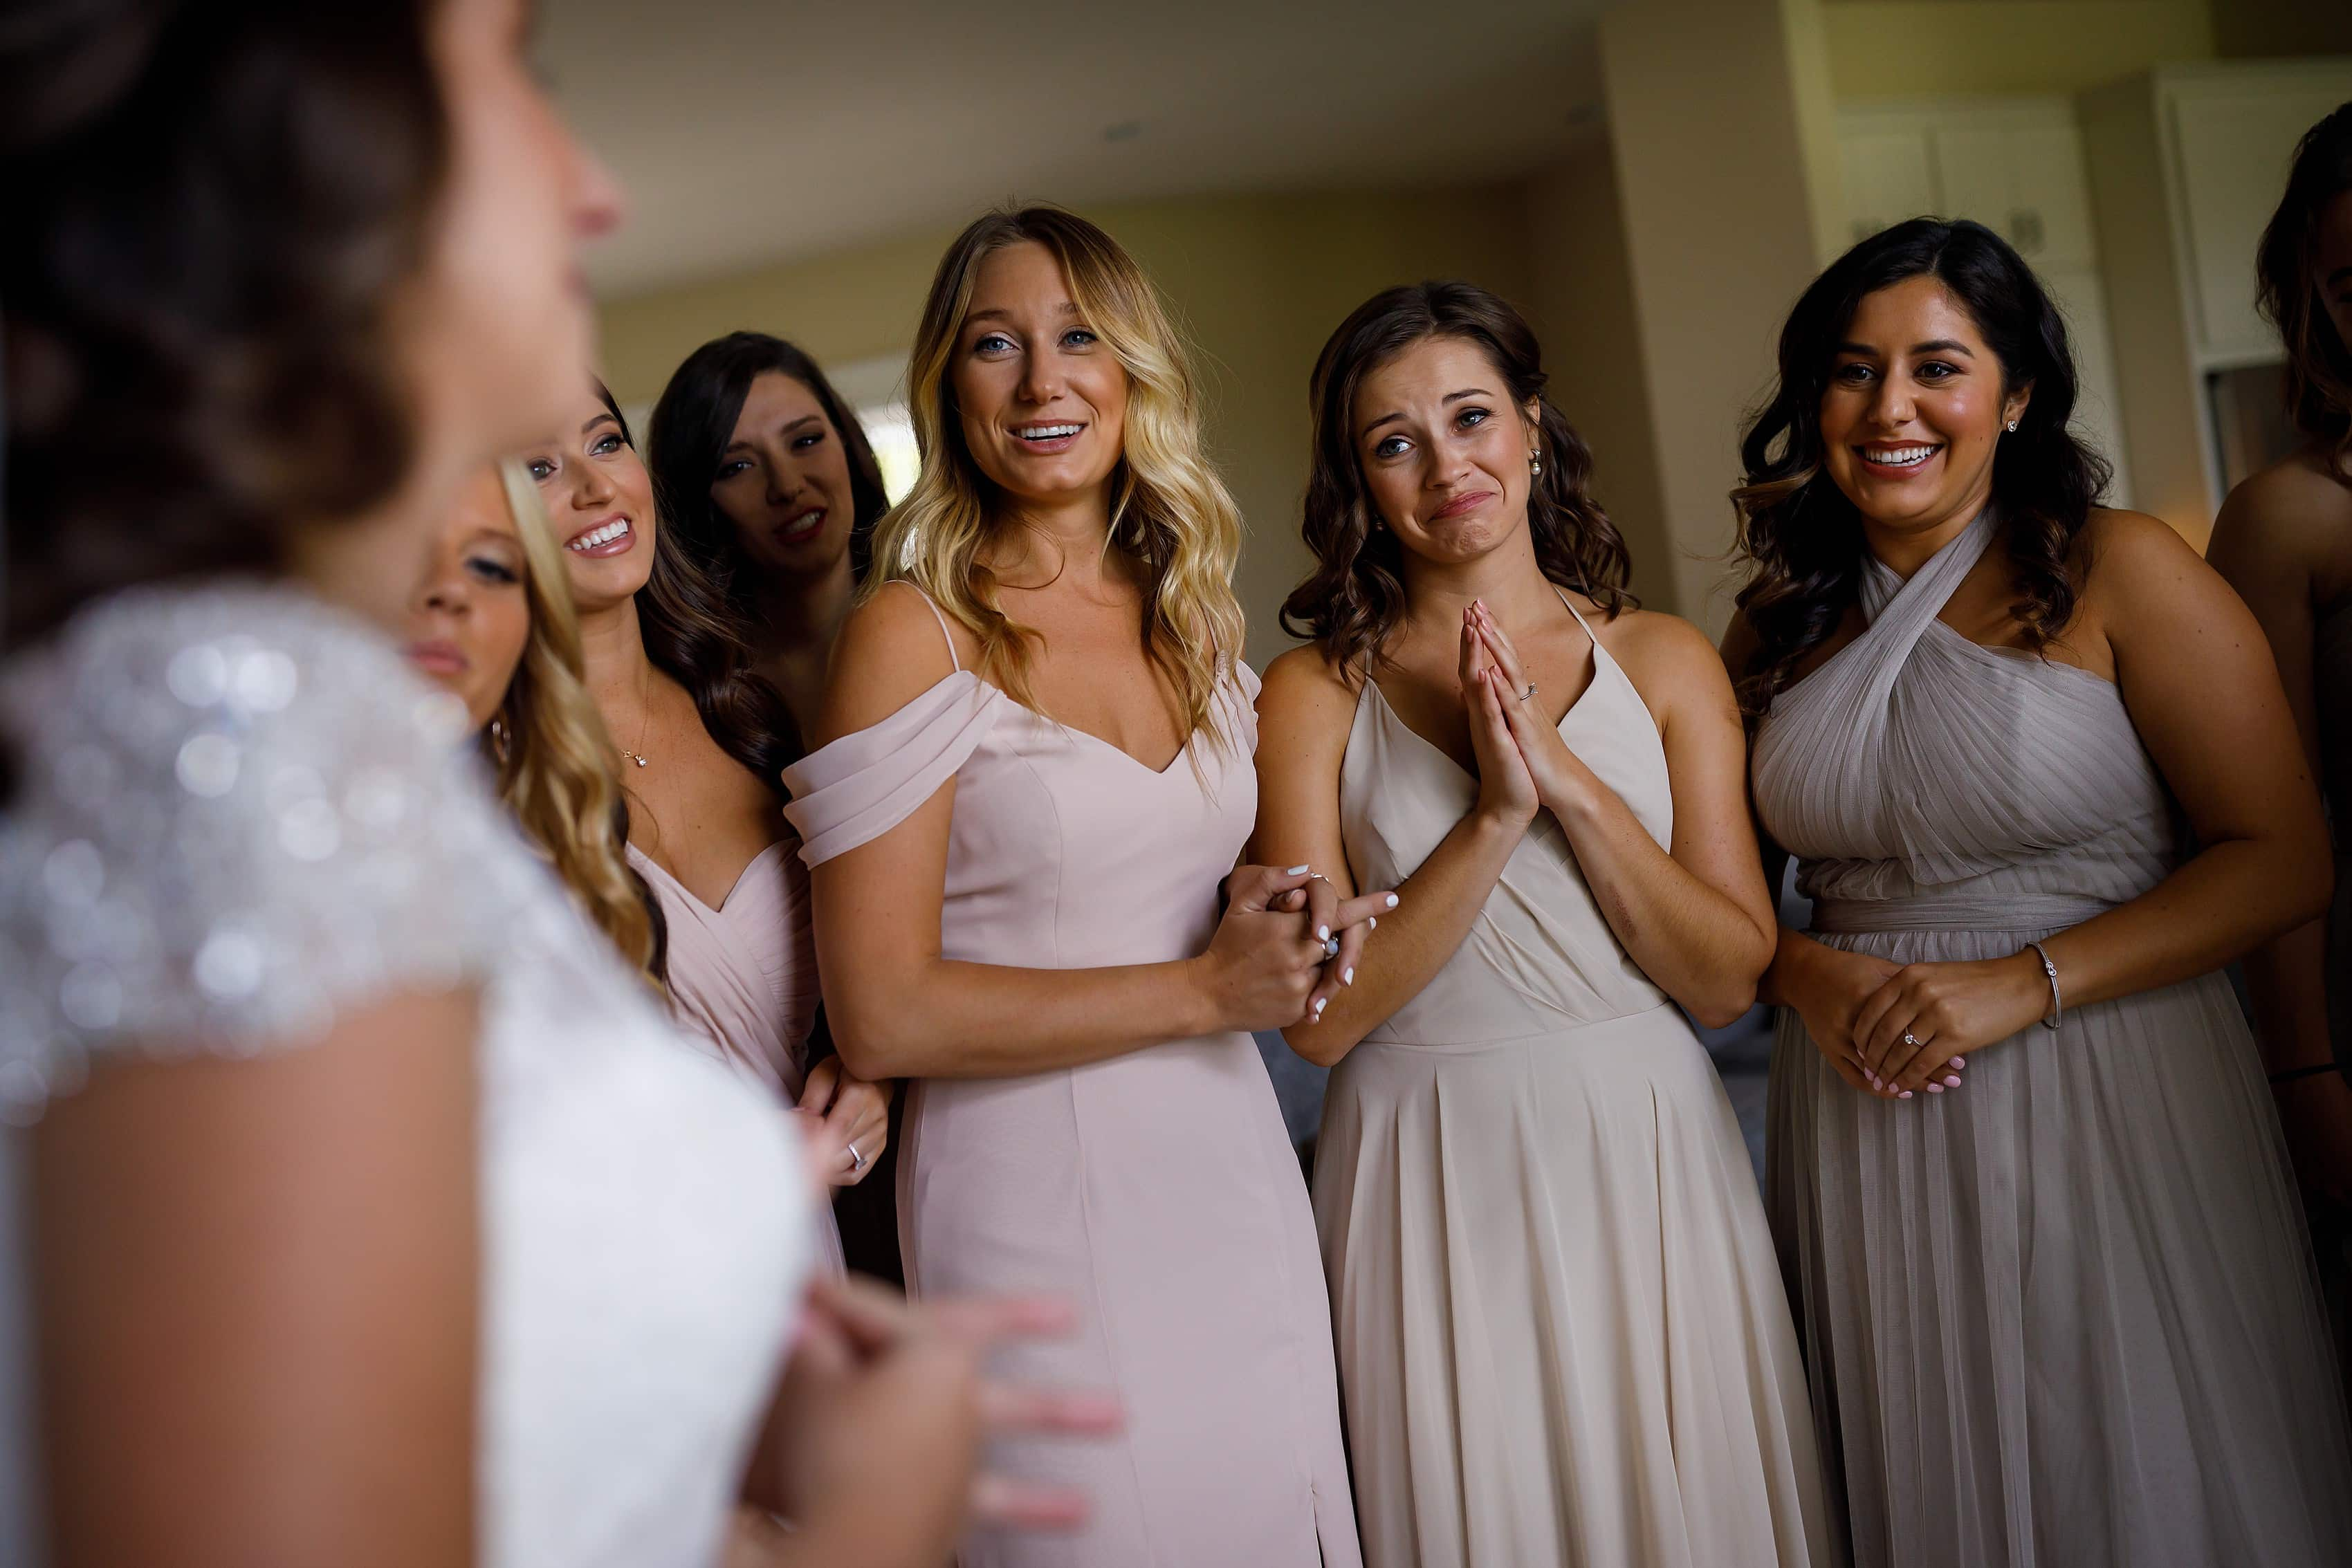 Group of bridesmaids reacts to seeing bride in her dress while getting ready for wedding